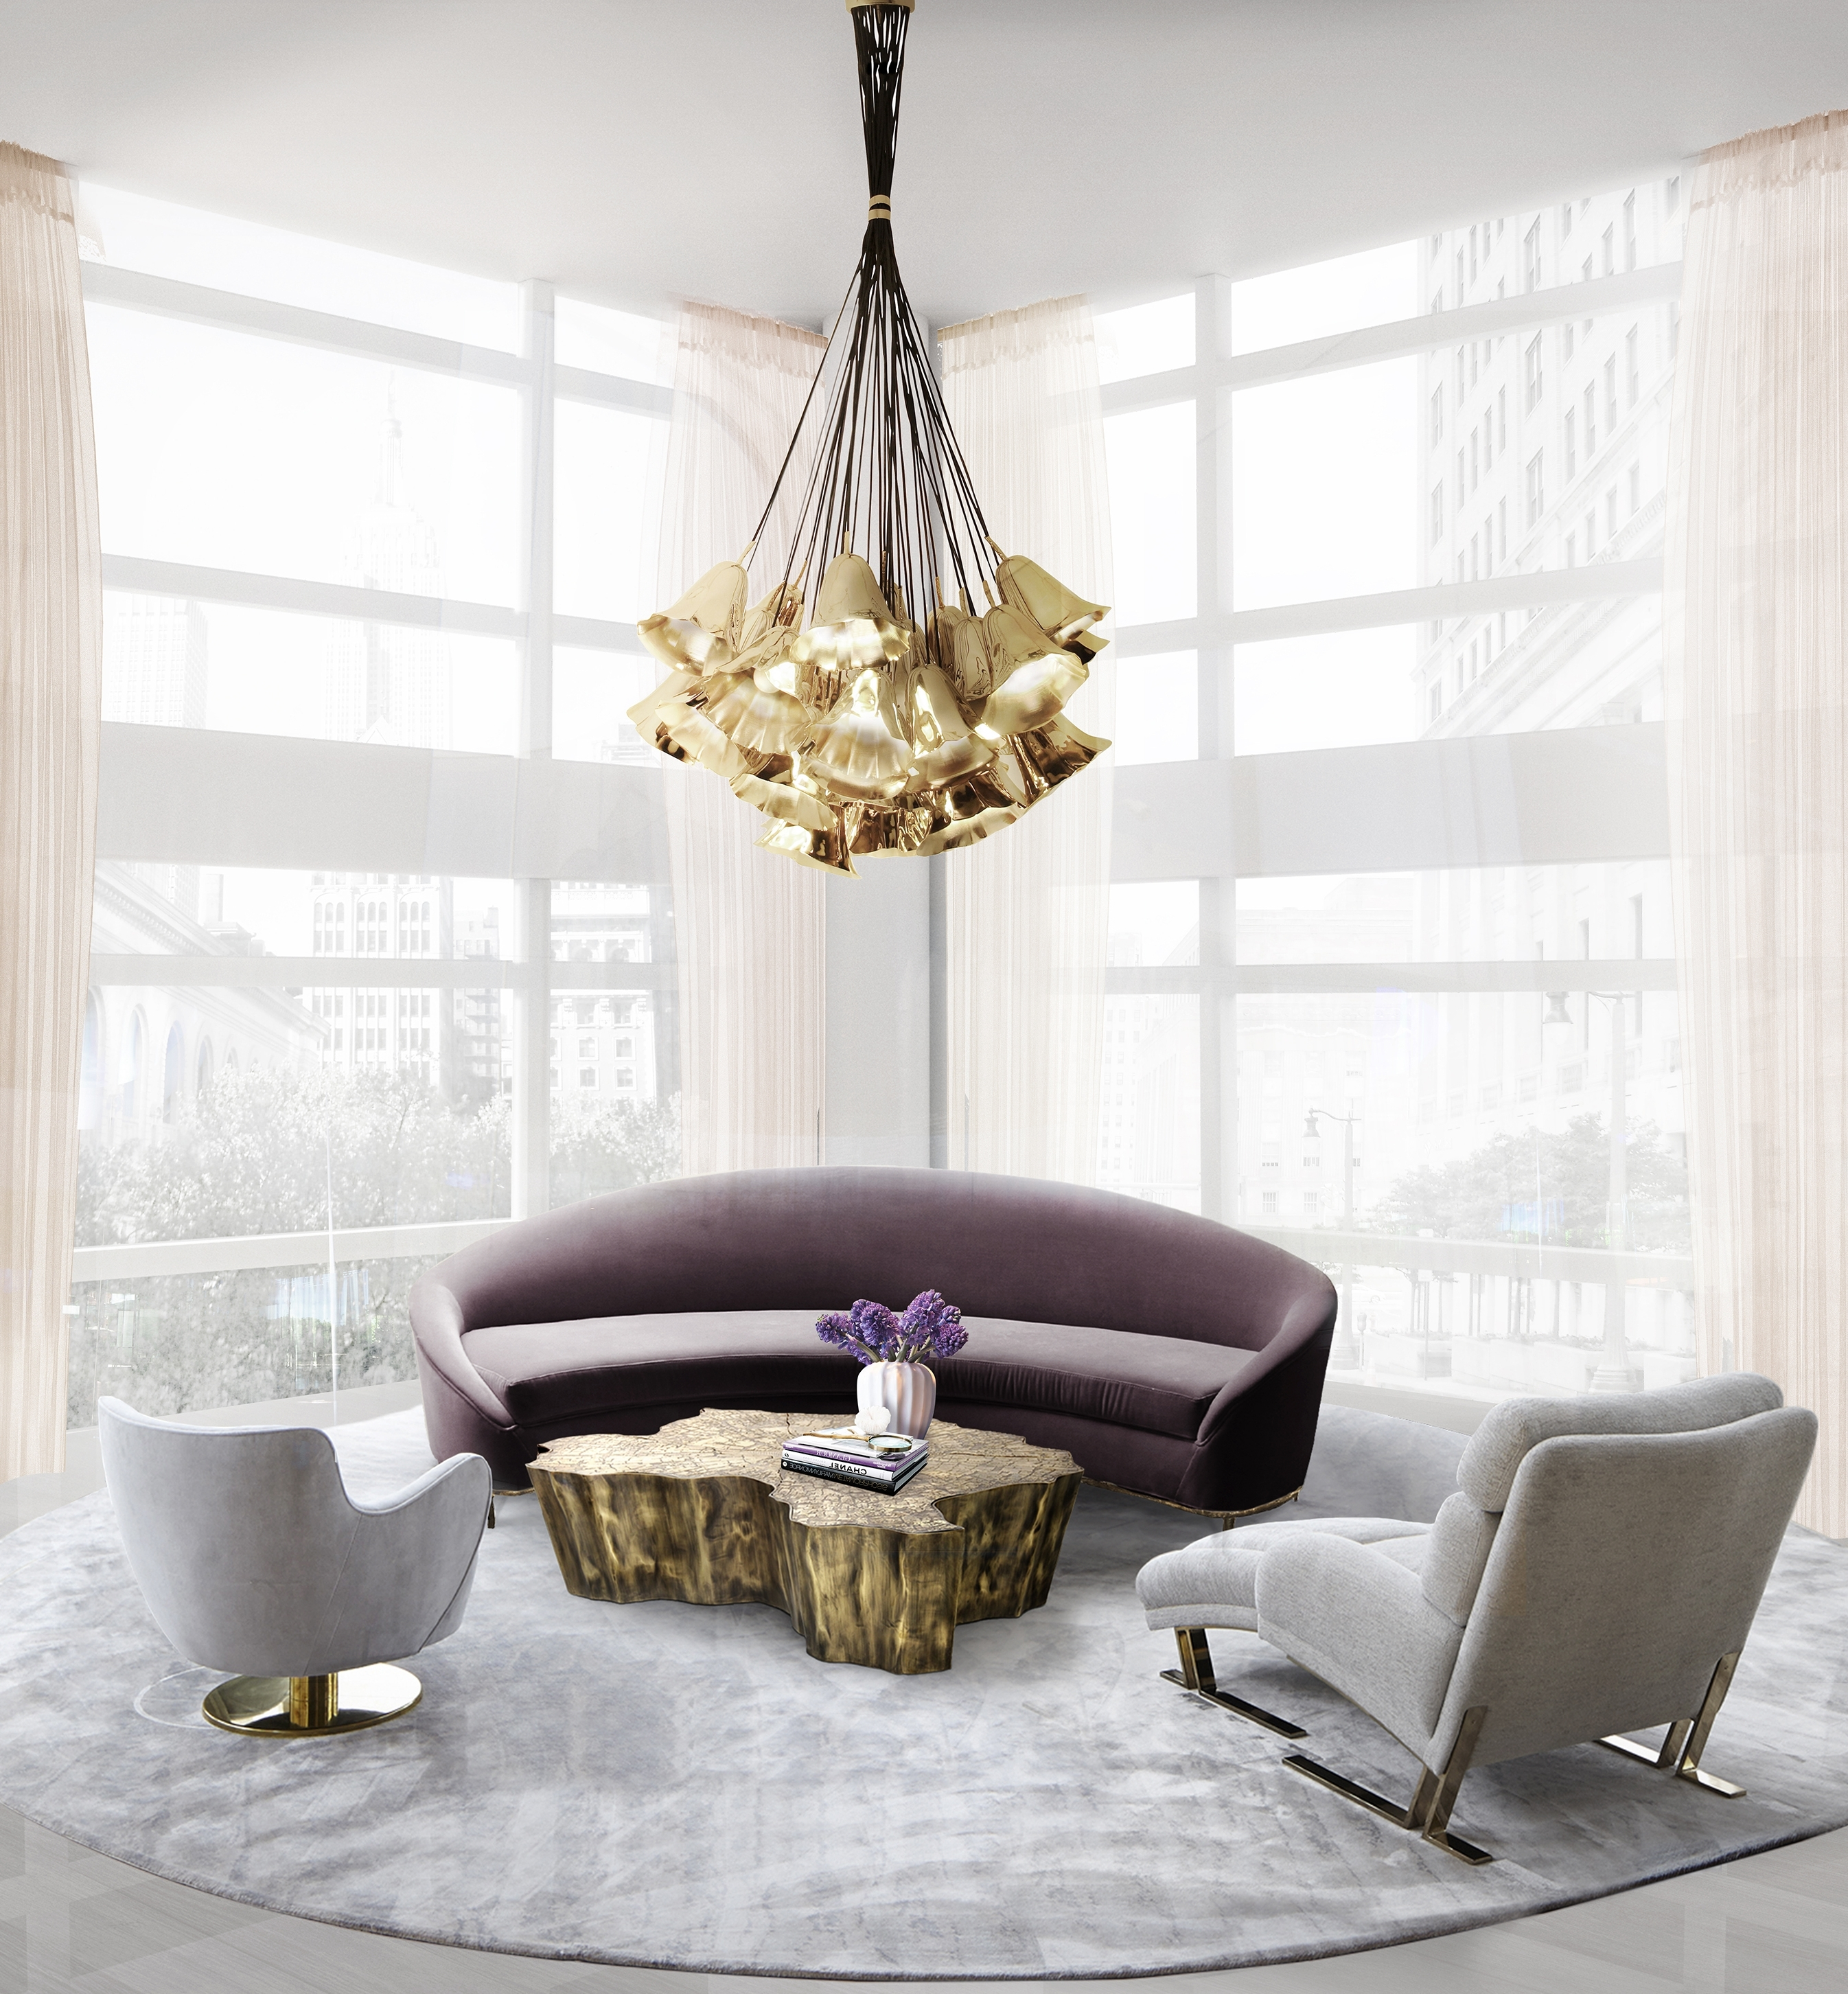 8 Decorating Ideas To Improve Your Living Room Design For Most Popular Luxury Living Room Table Lamps (View 10 of 20)